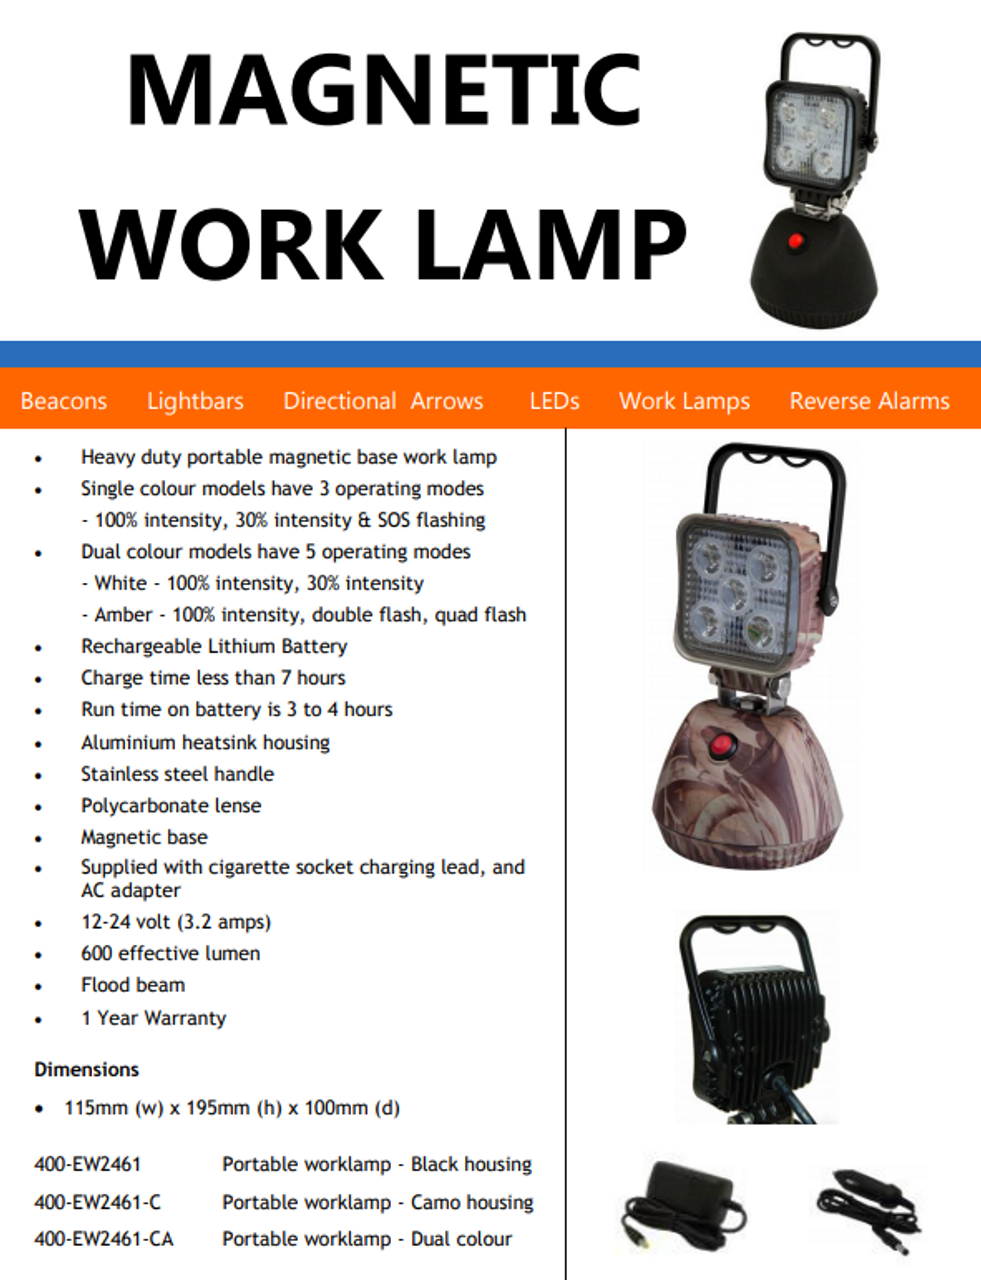 Portable Flood Light, Battery Operated, Magnetic Mount, Rechargeable, LED Work Light, 15 watt. EW2461-AU. Complete Package. Black Colour Housing. White LED's